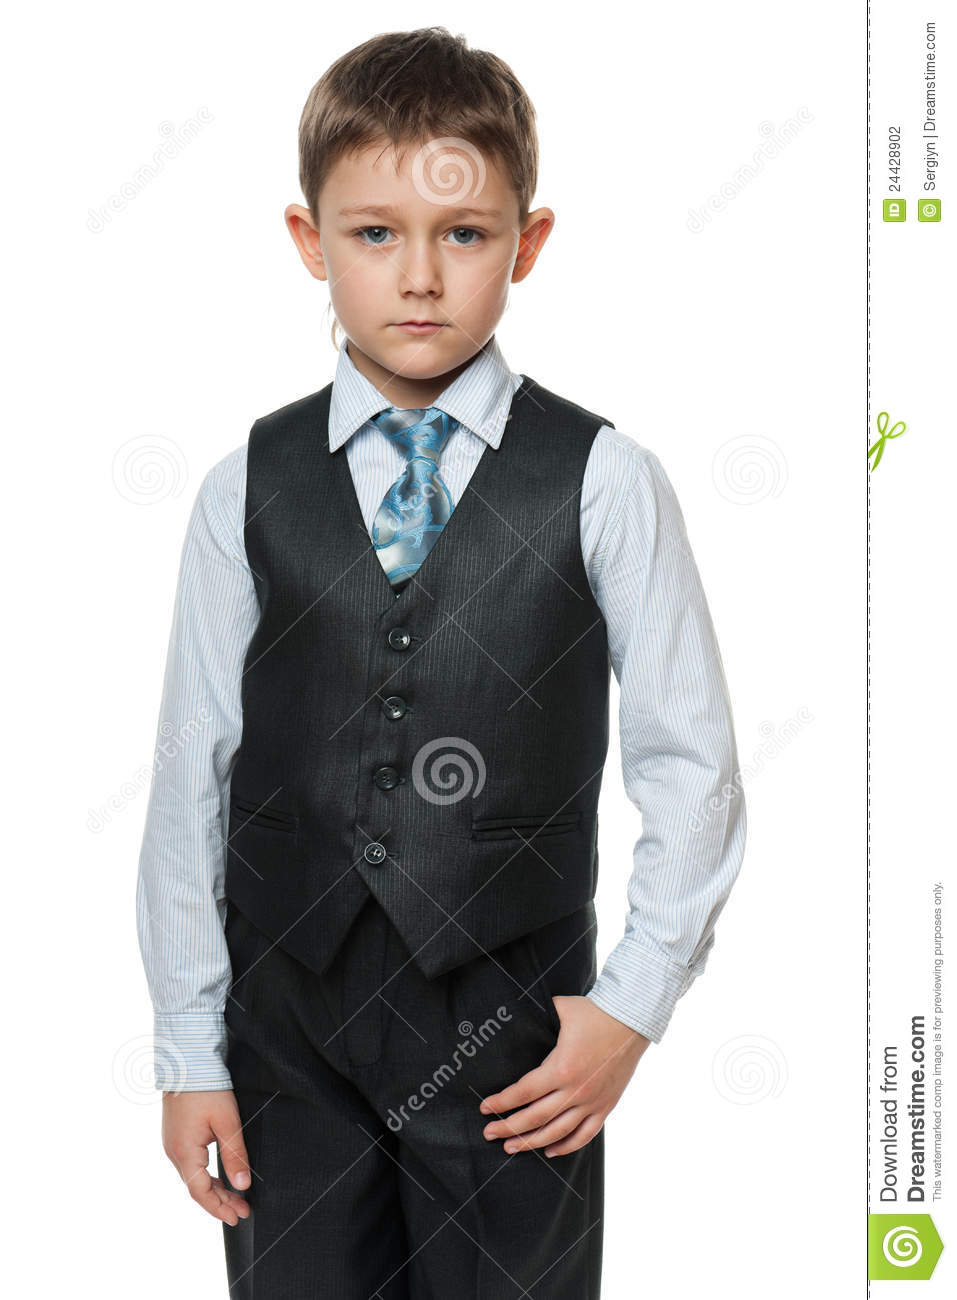 Why rent a boys tuxedo for triple the price when you can preview and find a stylish, brand-new, high-quality boys tuxedo with us? We have all different styles and fabrics to choose from, and enough accessories for you to pull any specific tuxedo ensemble off for your little one.